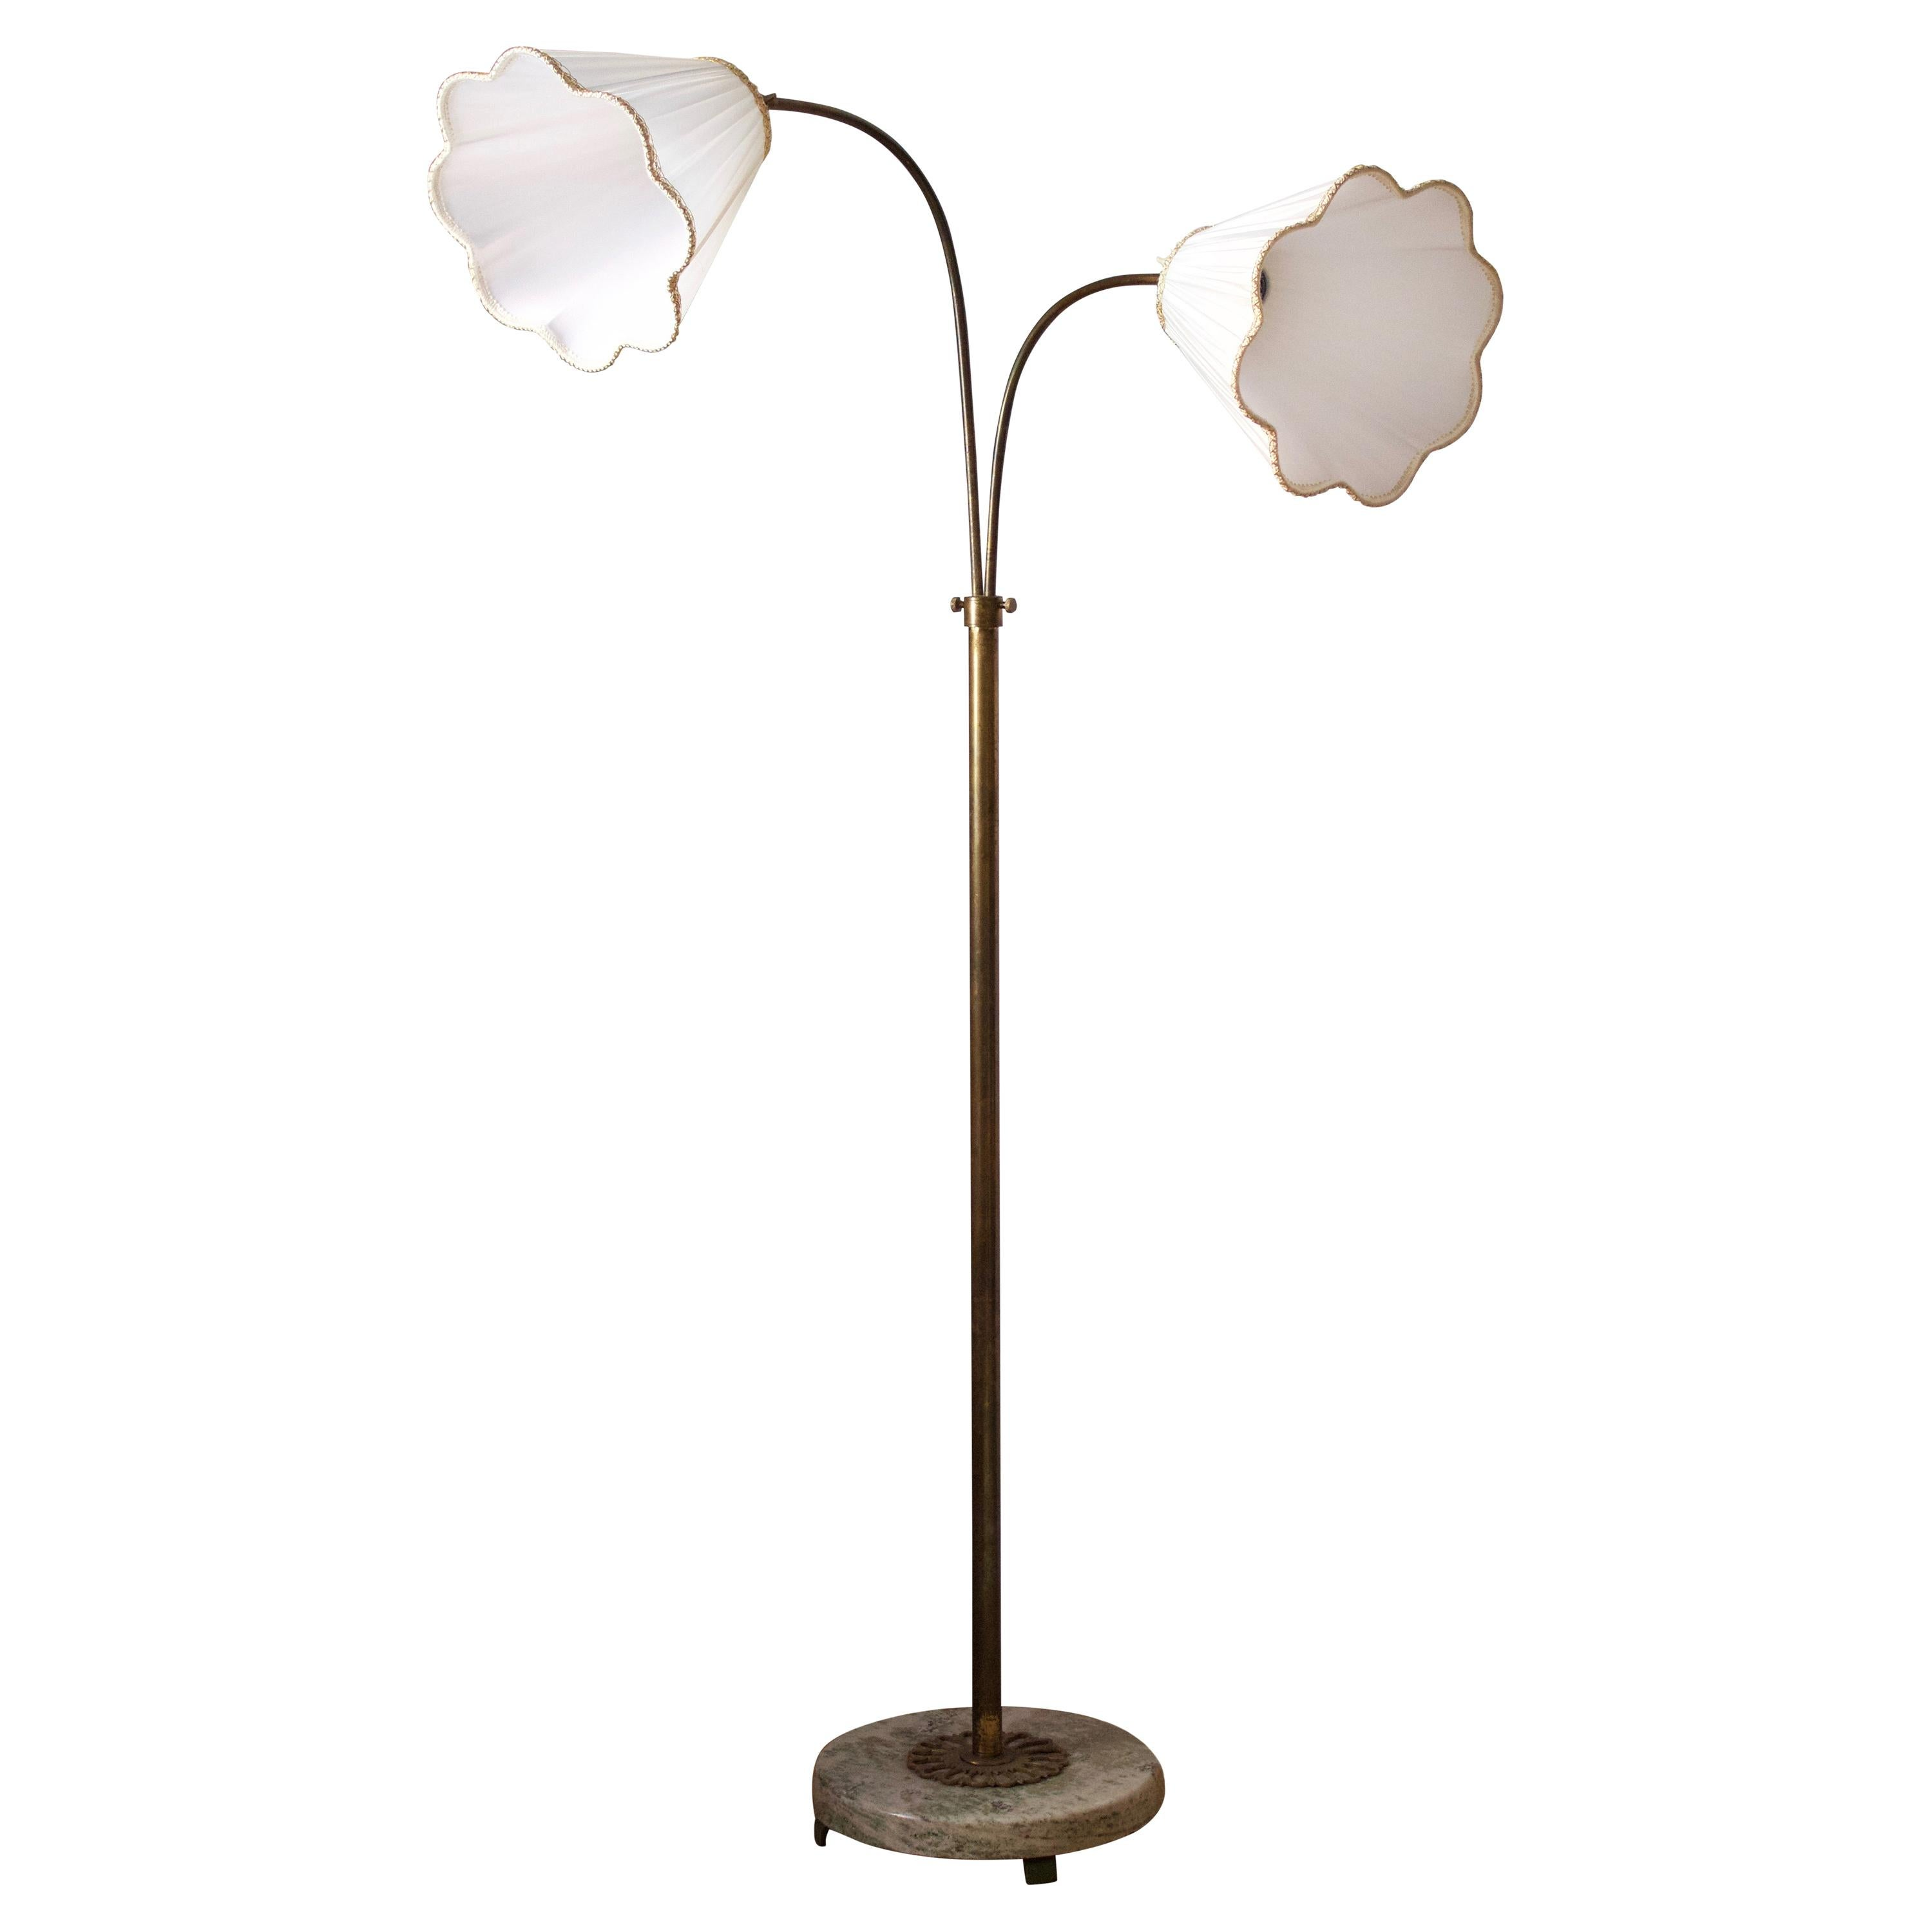 Swedish, Adjustable Two-Armed Floor Lamp, Brass, Marble, Fabric, Sweden, 1940s